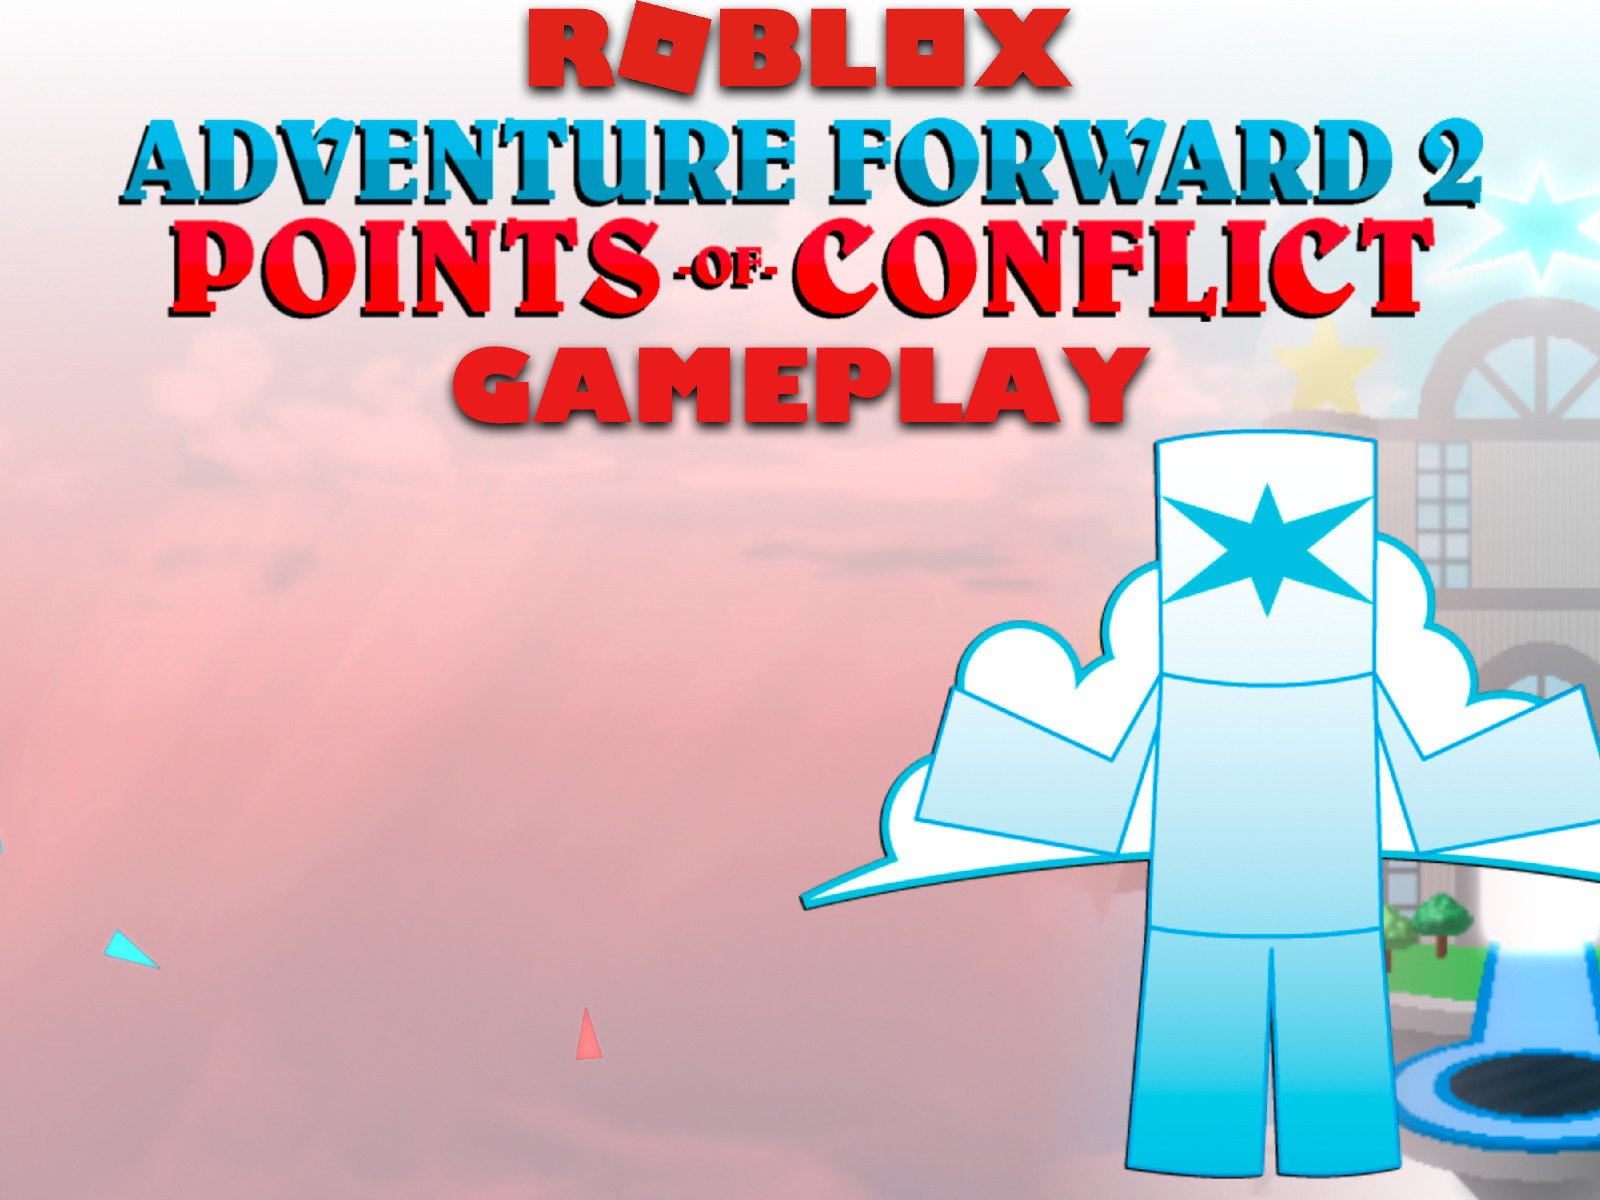 Clip: Roblox Adventure Forward 2 Points Of Conflict Gameplay